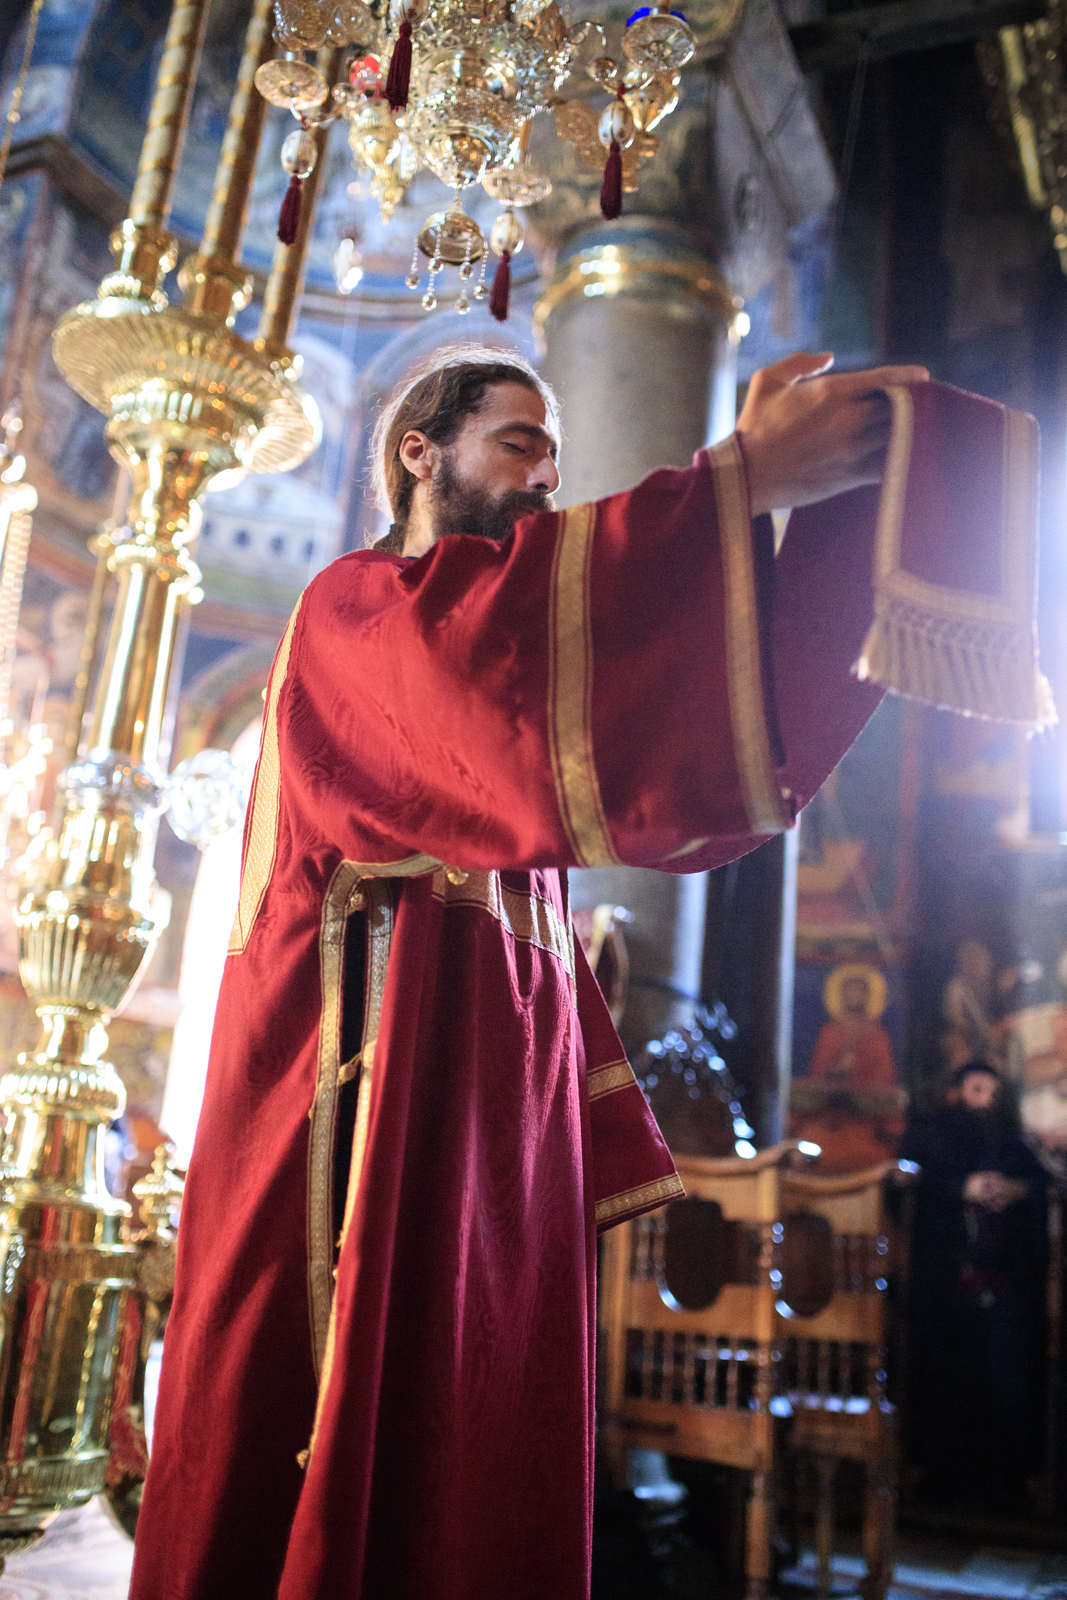 Religion and church today: The Orthodox difference